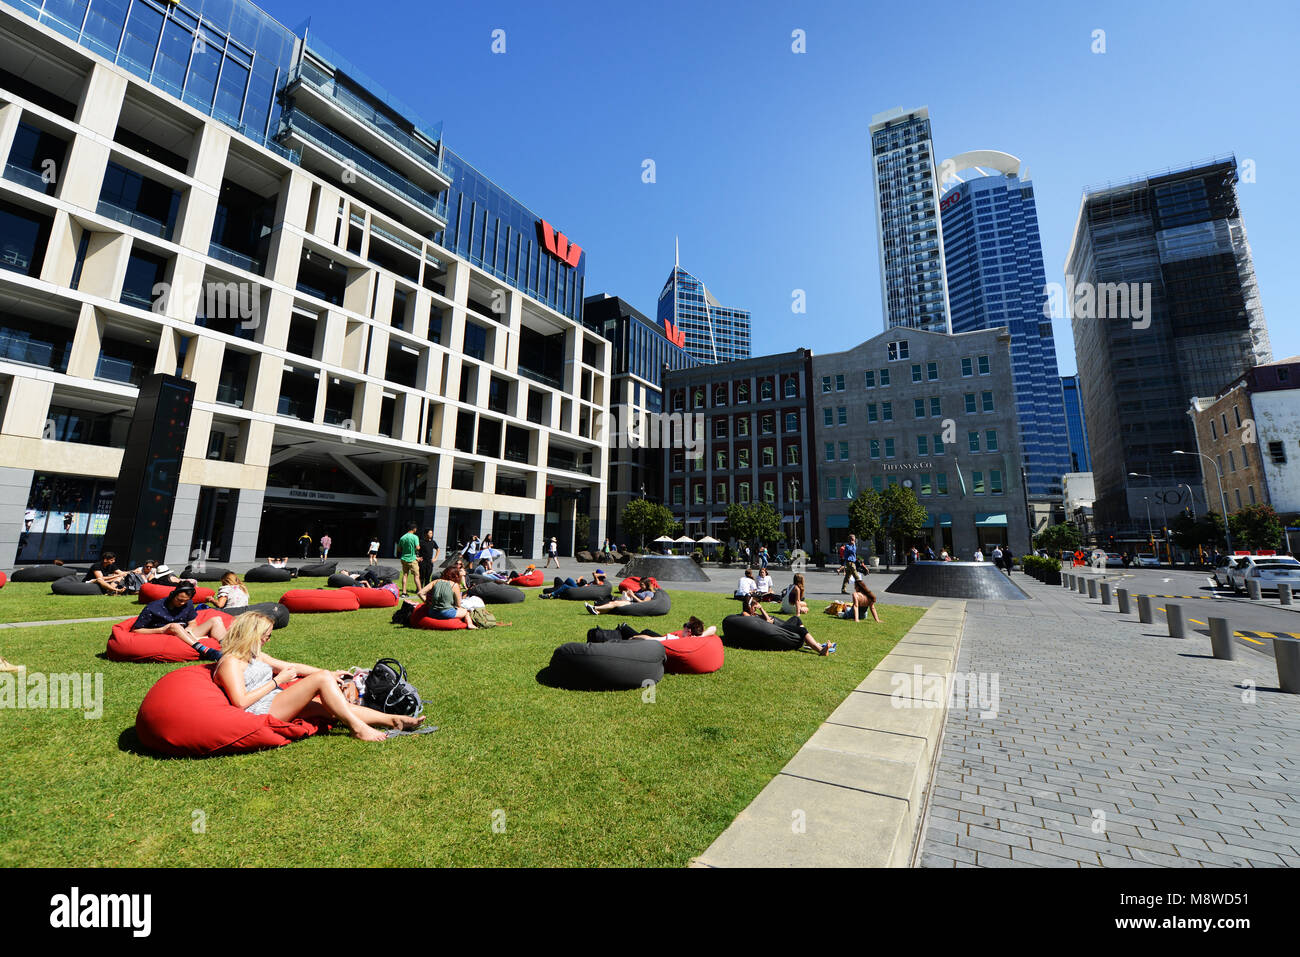 Locals relaxing on the Takutai Lawn at the Talitao square in Auckland's city center. - Stock Image